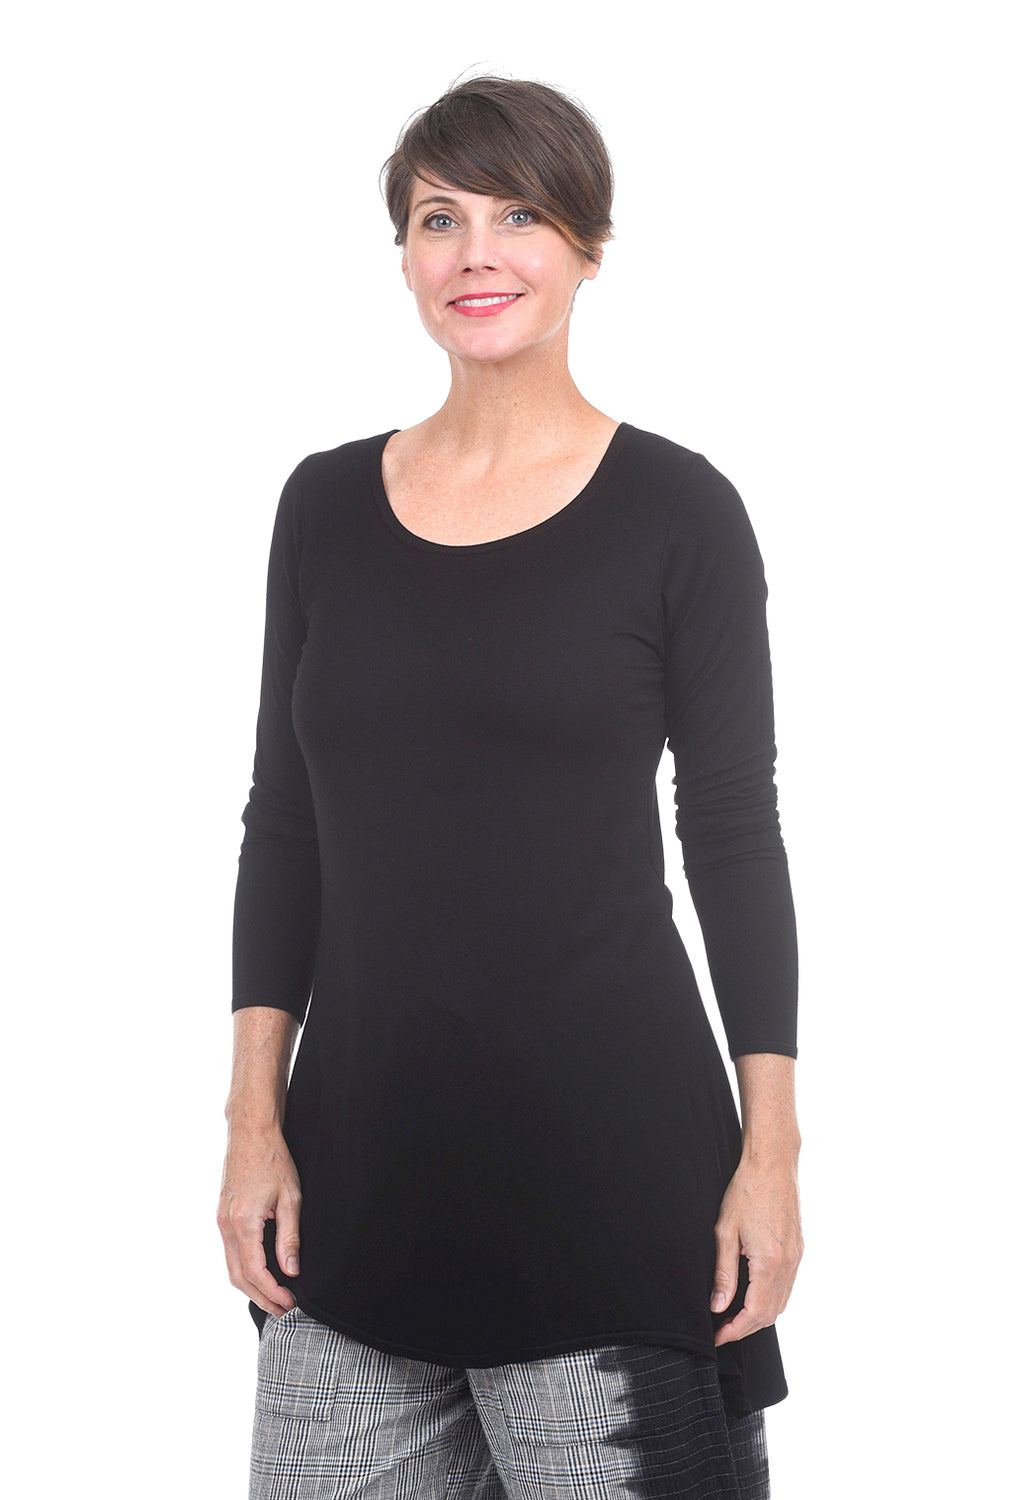 Cynthia Ashby Soft Swerve T-Shirt, Black